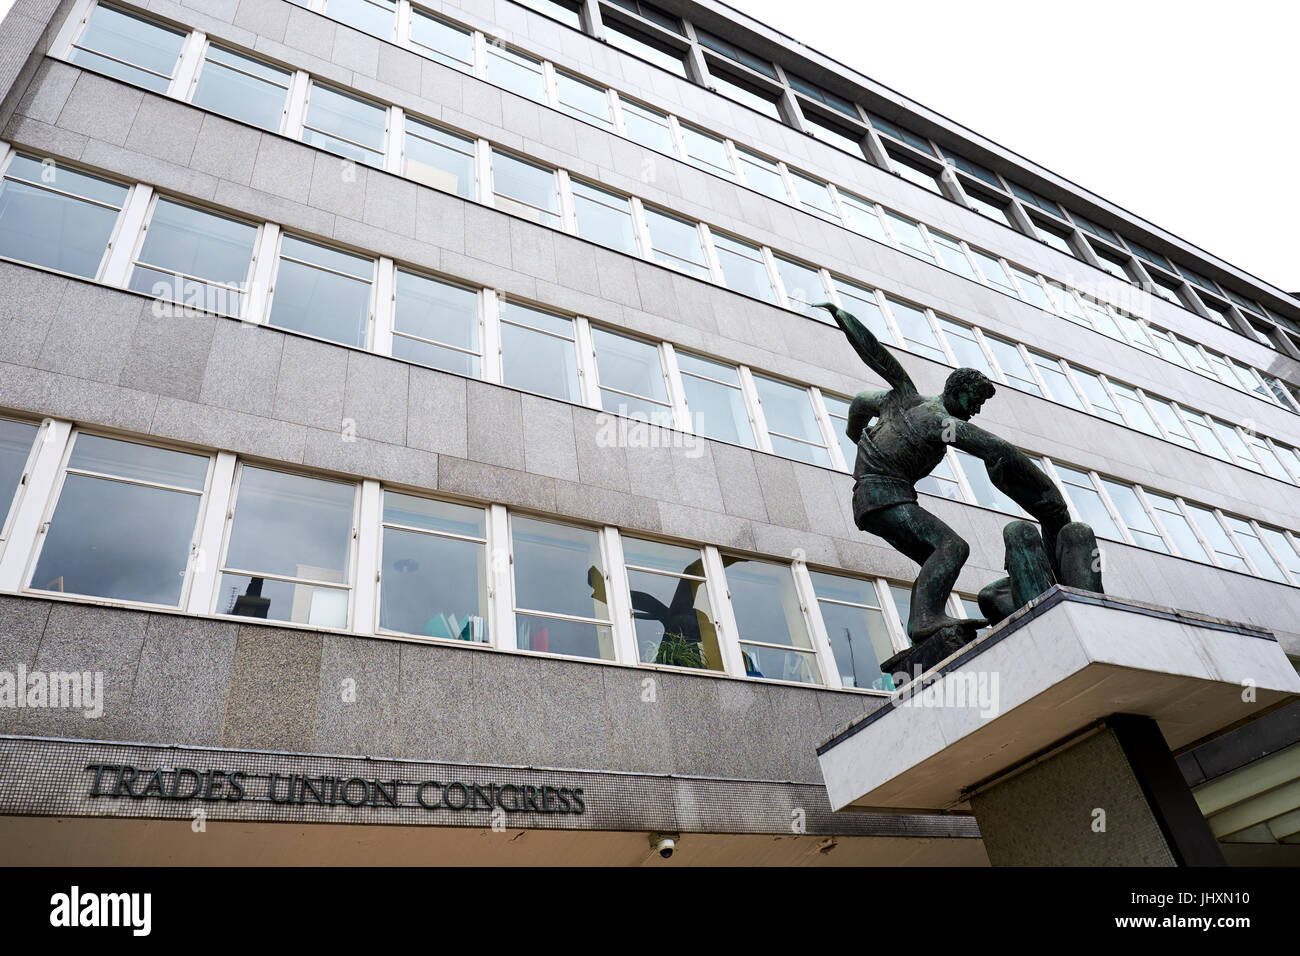 Trades Union Congress House, Great Russell Street, Bloomsbury, London, UK - Stock Image